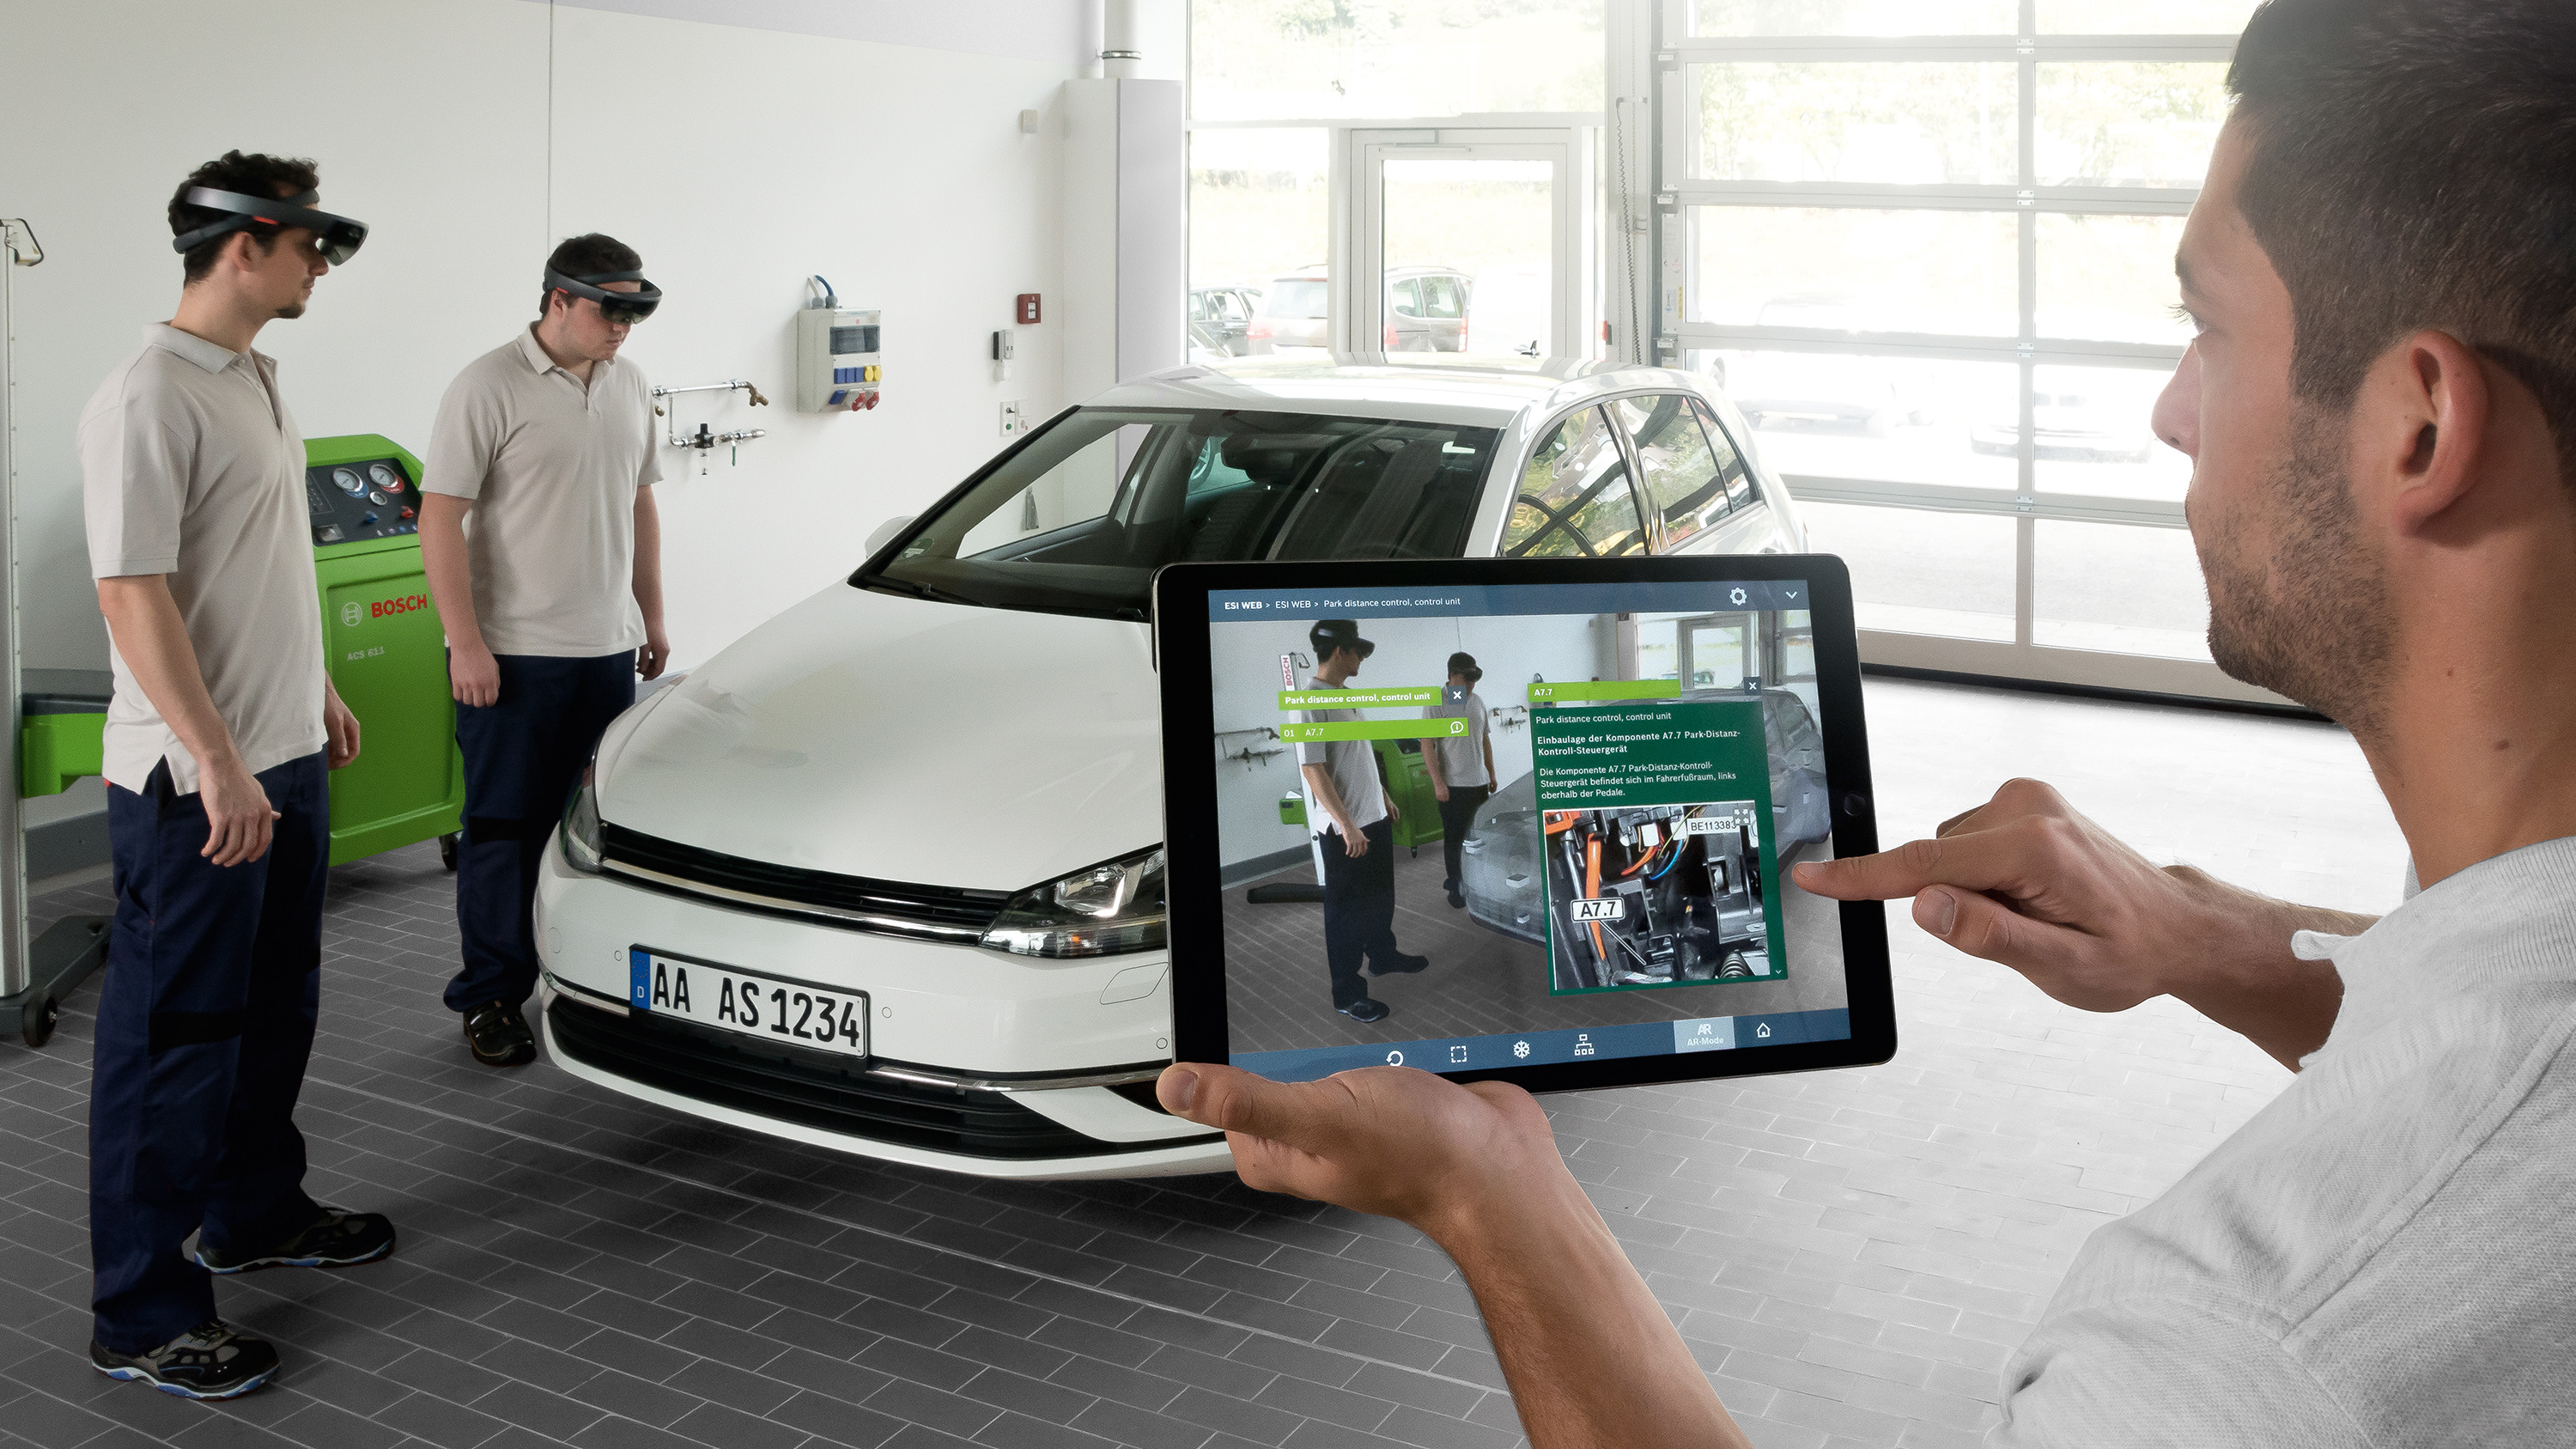 applications of augmented reality The digital and real world are growing together the augmented reality is merging the virtual content directly into our view to the world, for immersive experiences to enrich our private or professional life.